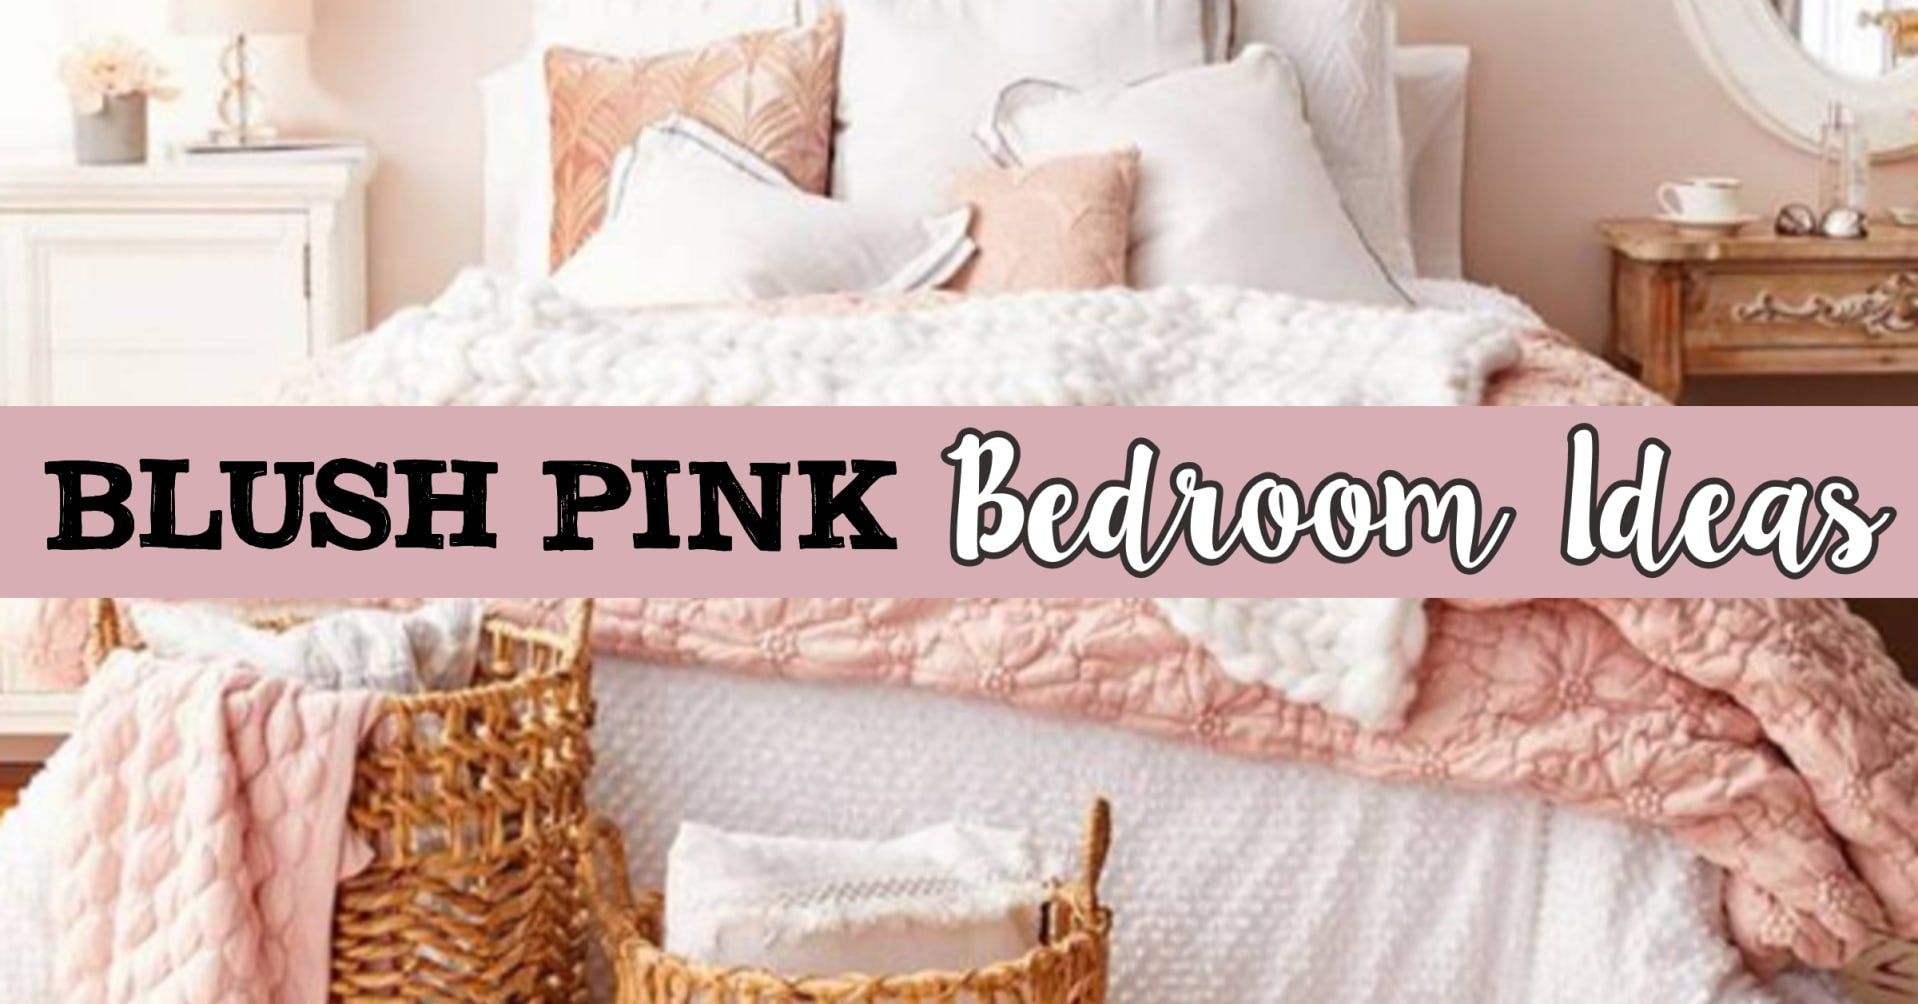 Bedroom Decorating Ideas - Blush Pink Bedrooms and Dusty Rose Bedroom Ideas